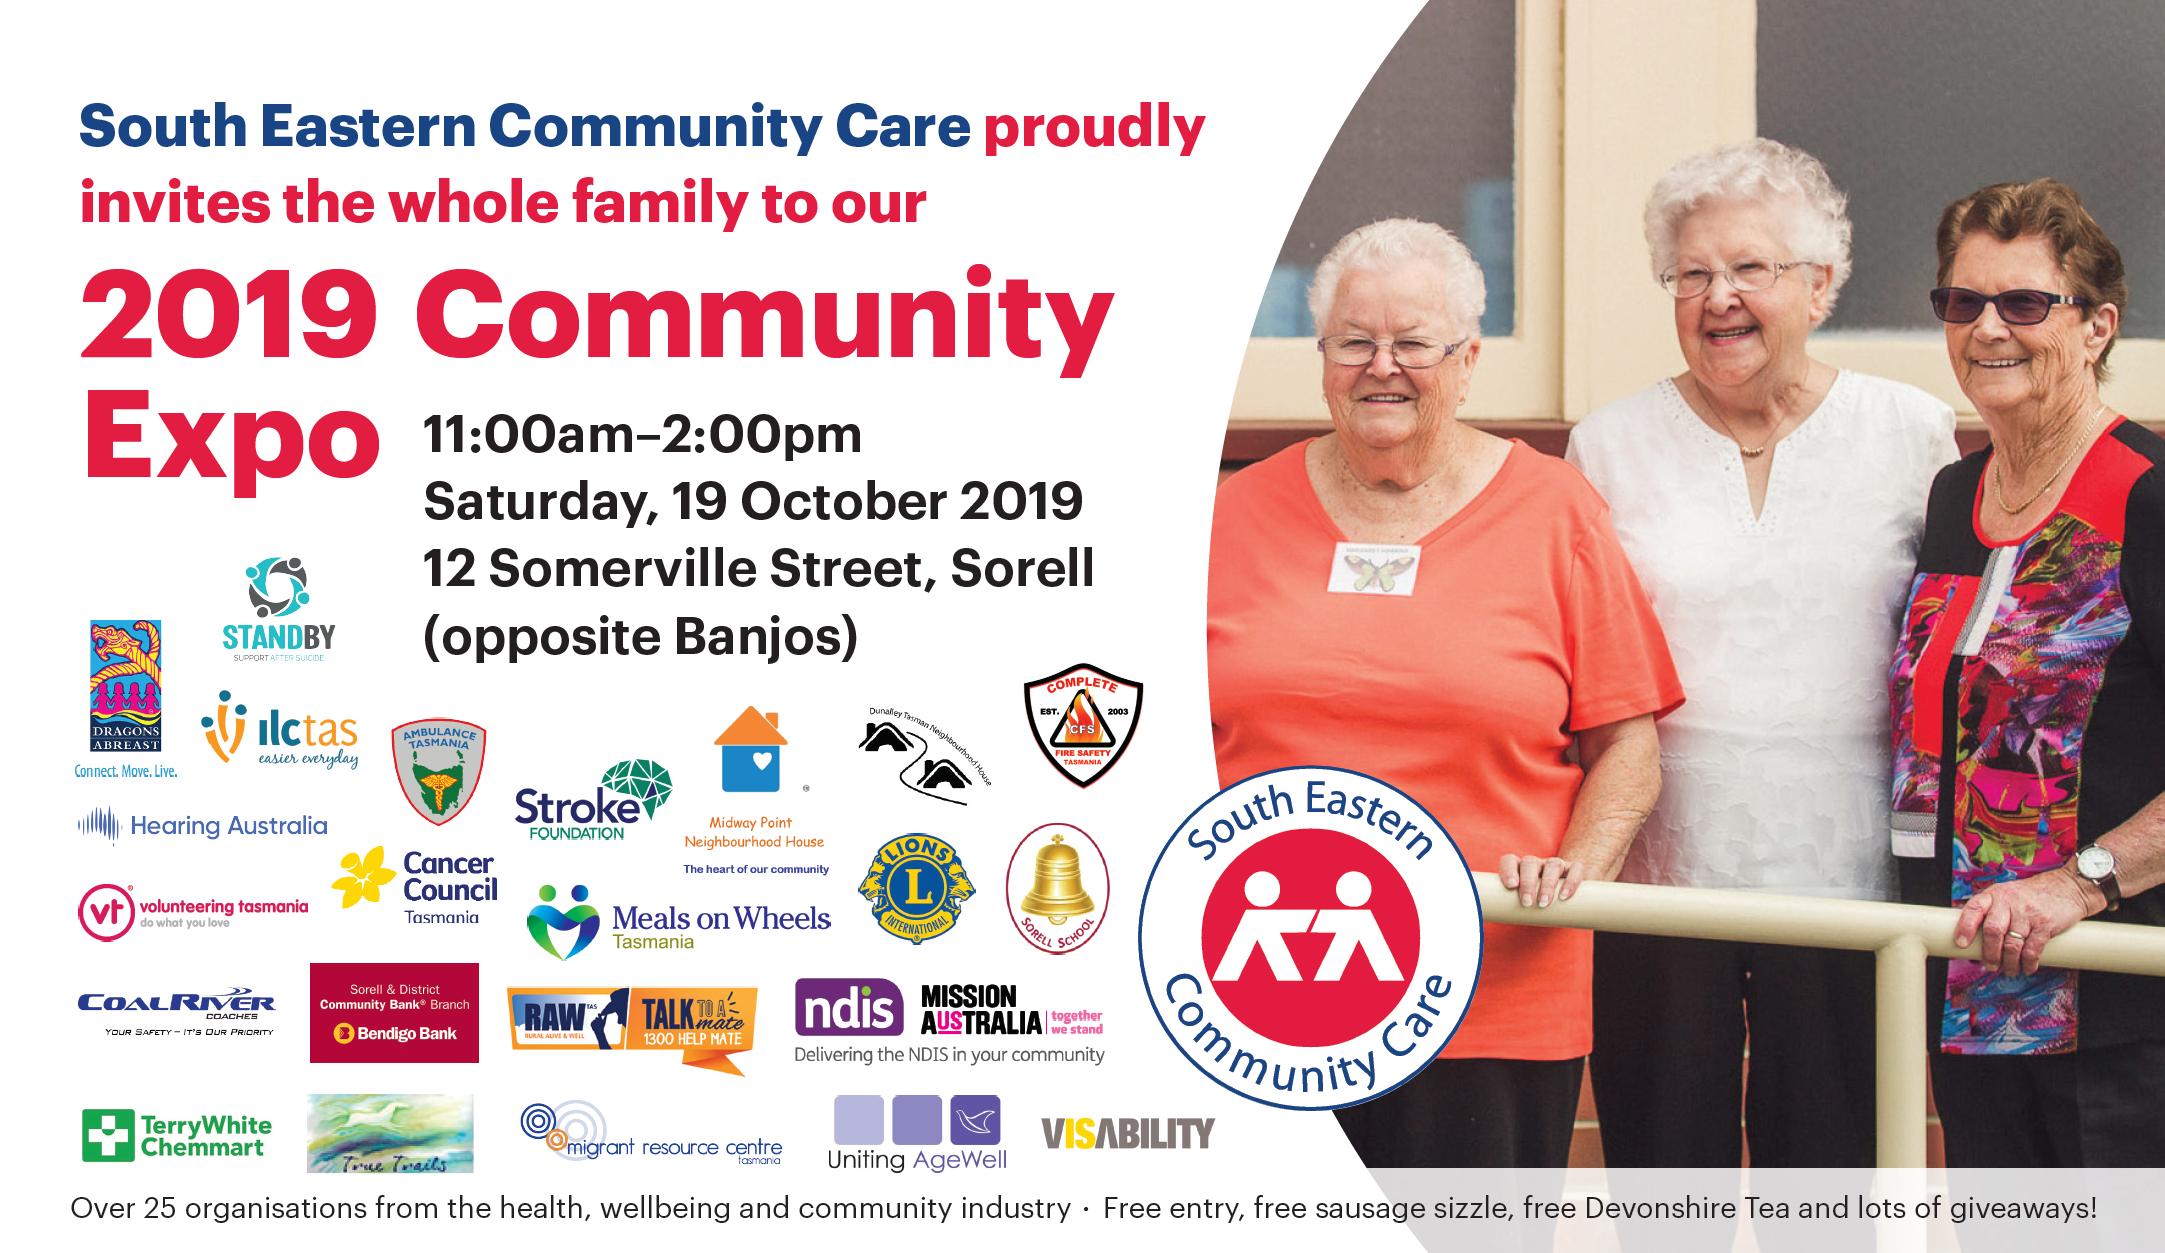 SEC Care Community Expo